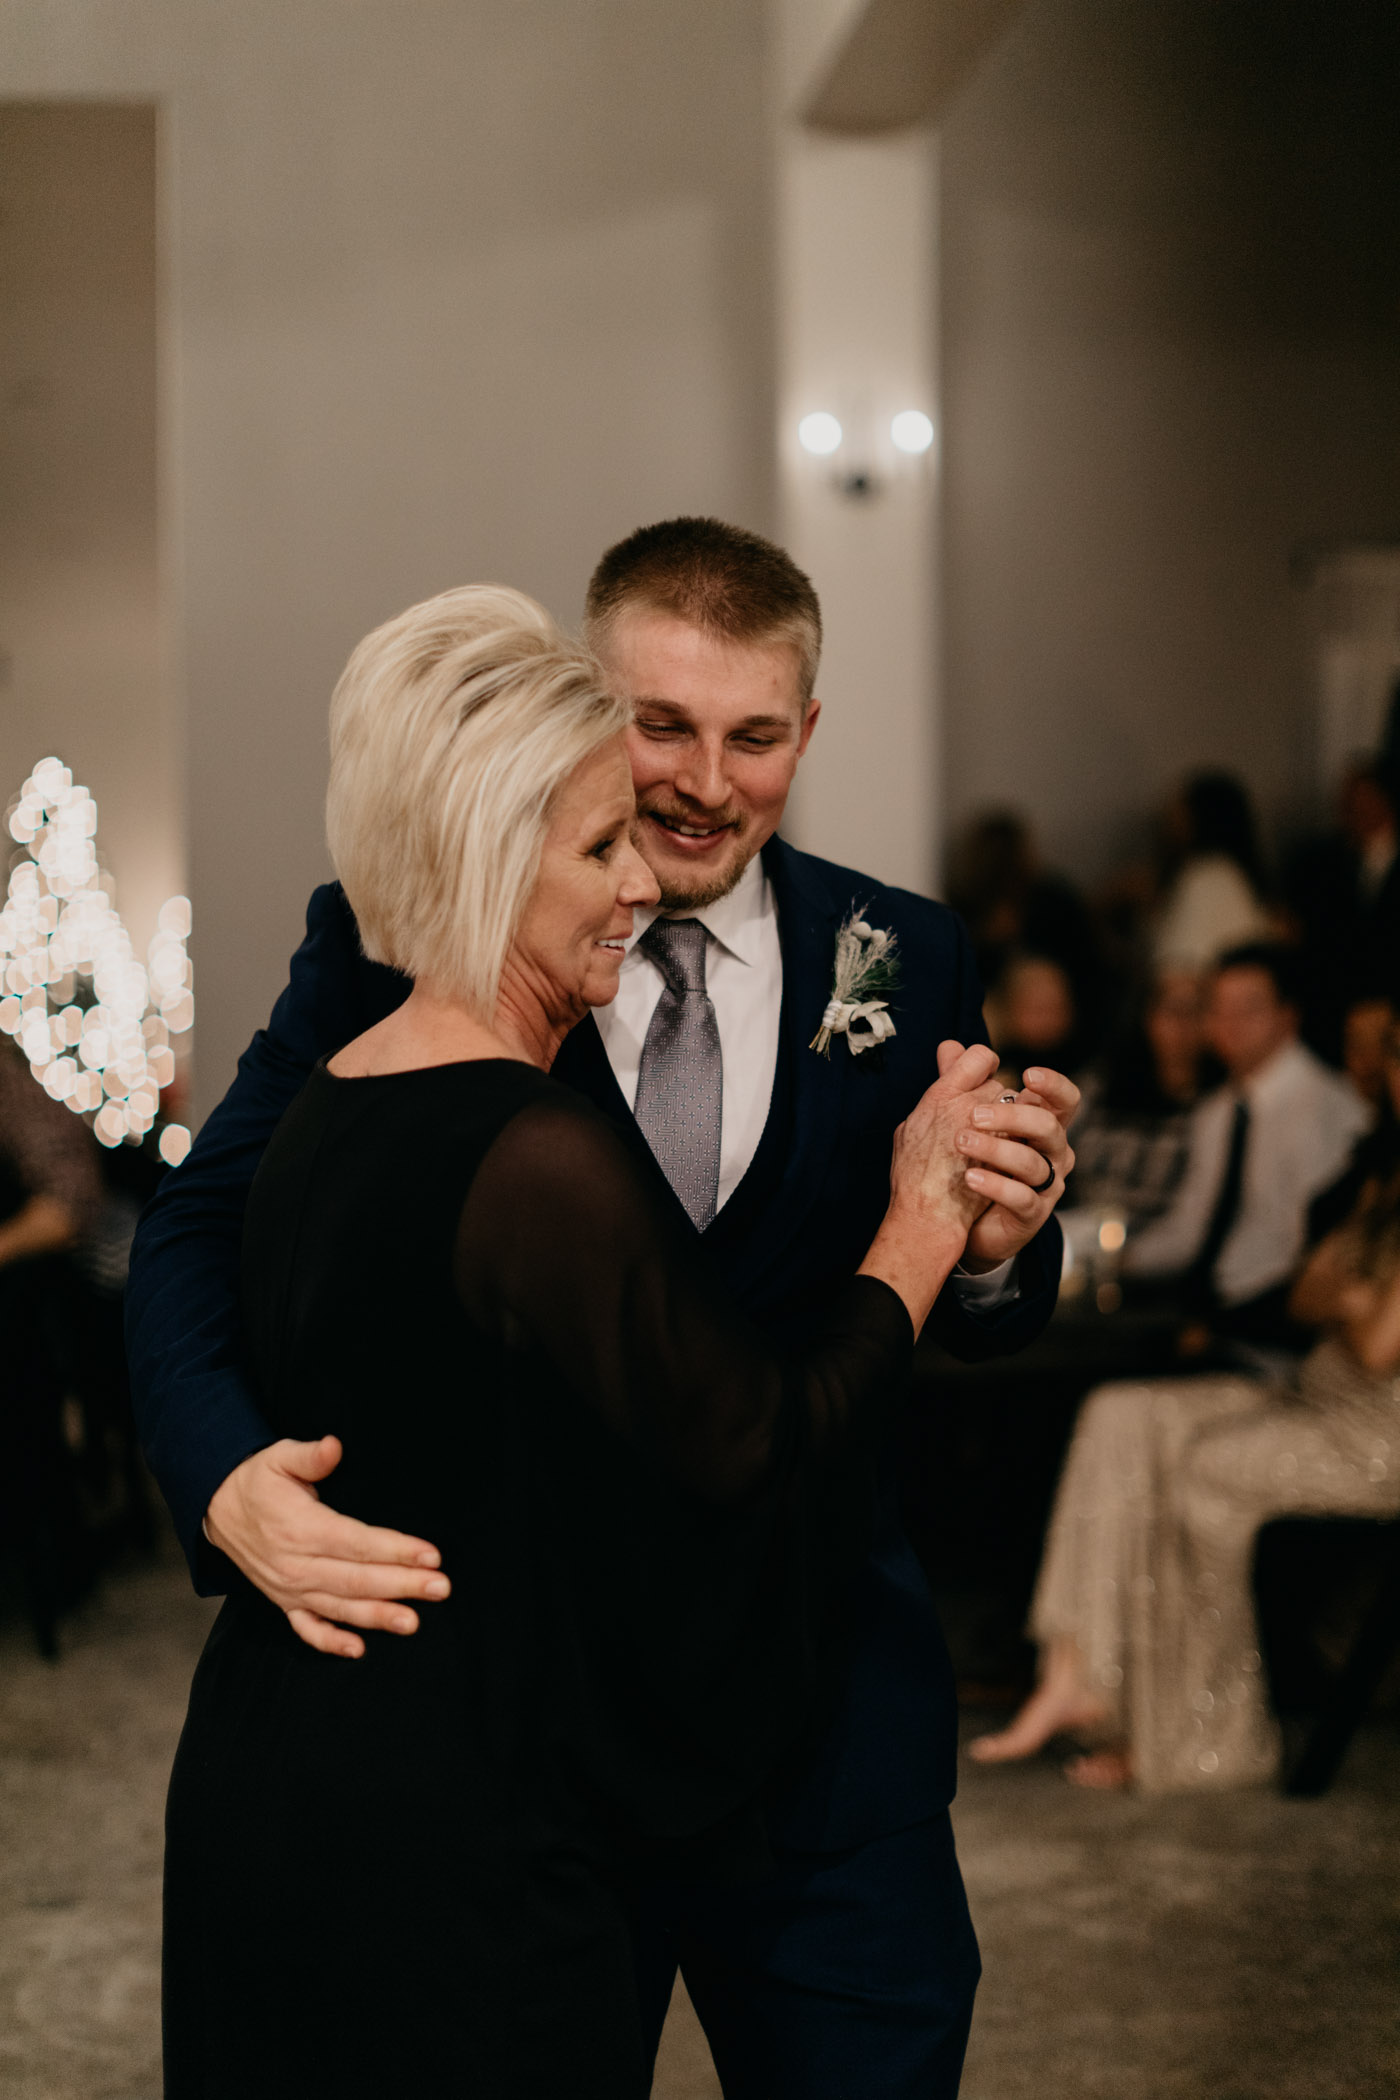 groom dancing with his mother on winter wedding day